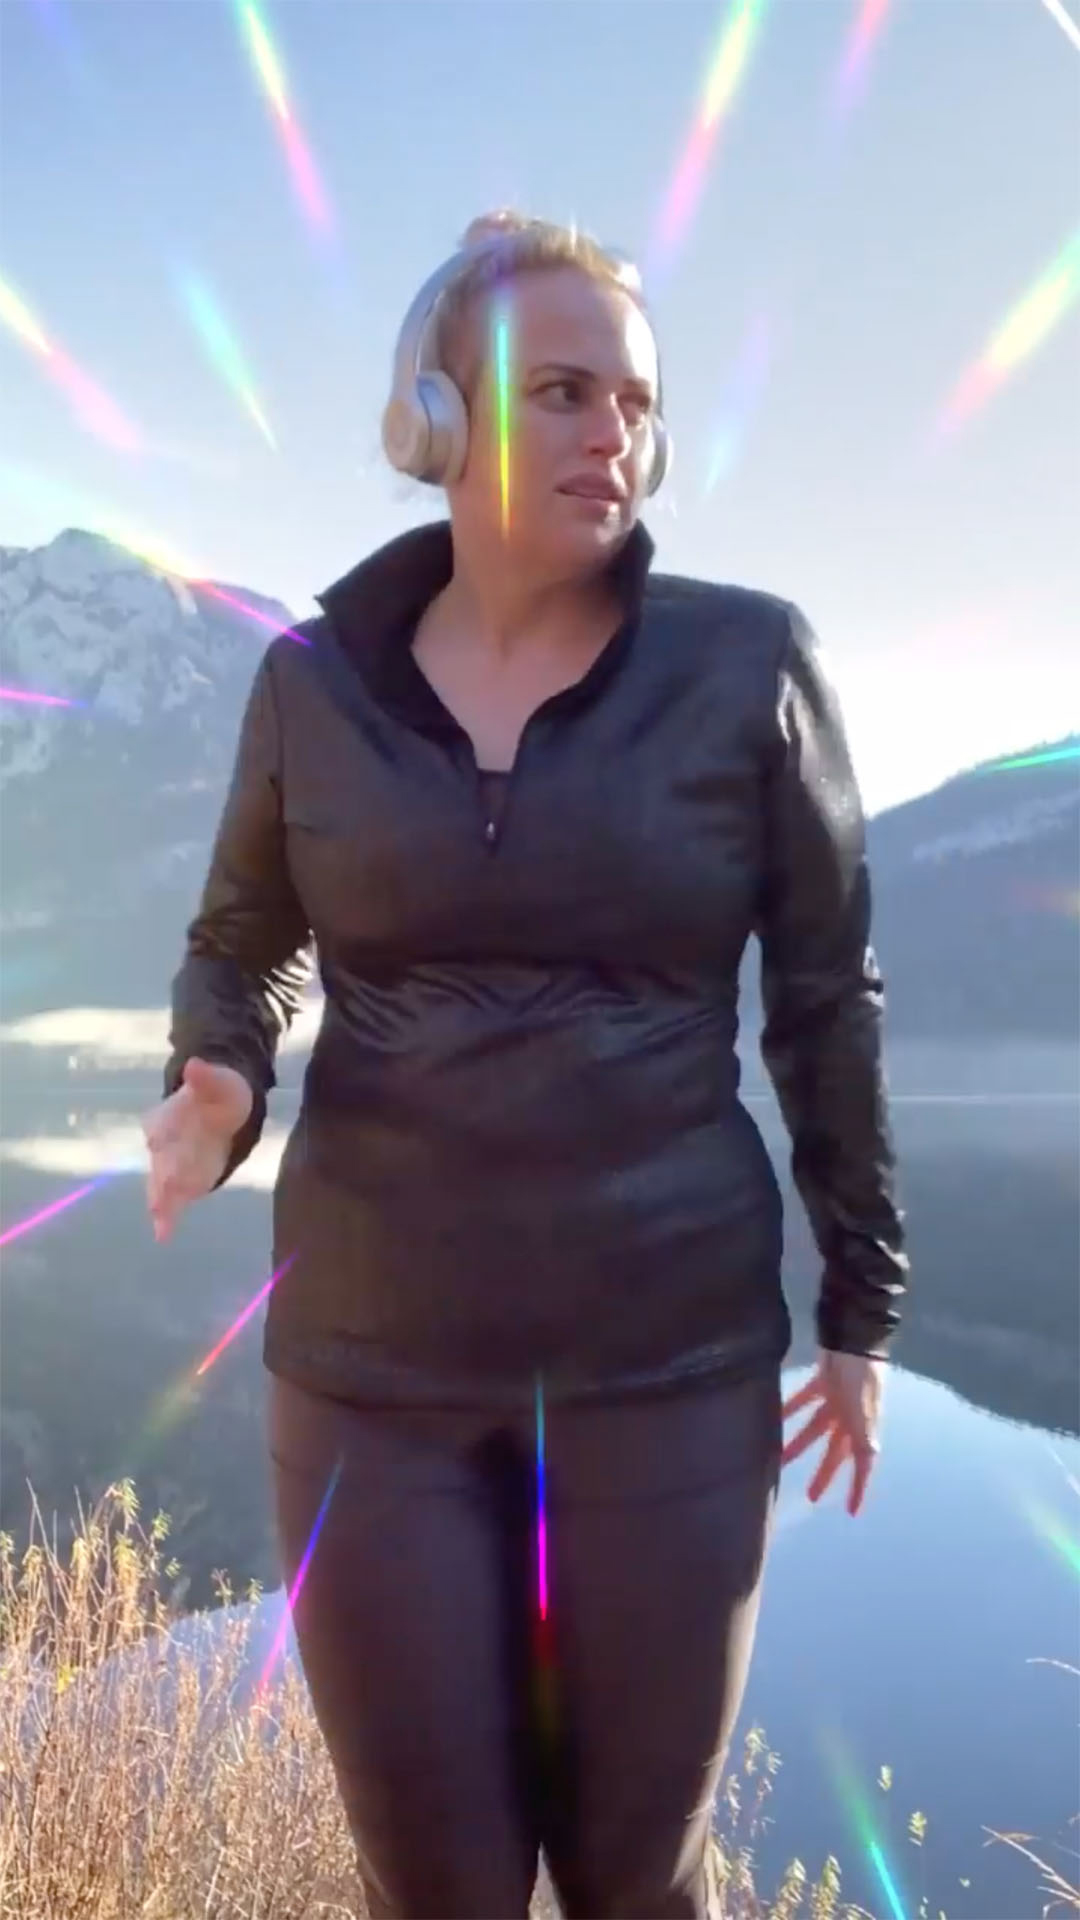 Rebel Wilson Is 'Finishing My Year of Health Off Strong' on a Walk: 'This Is the Place to Be'